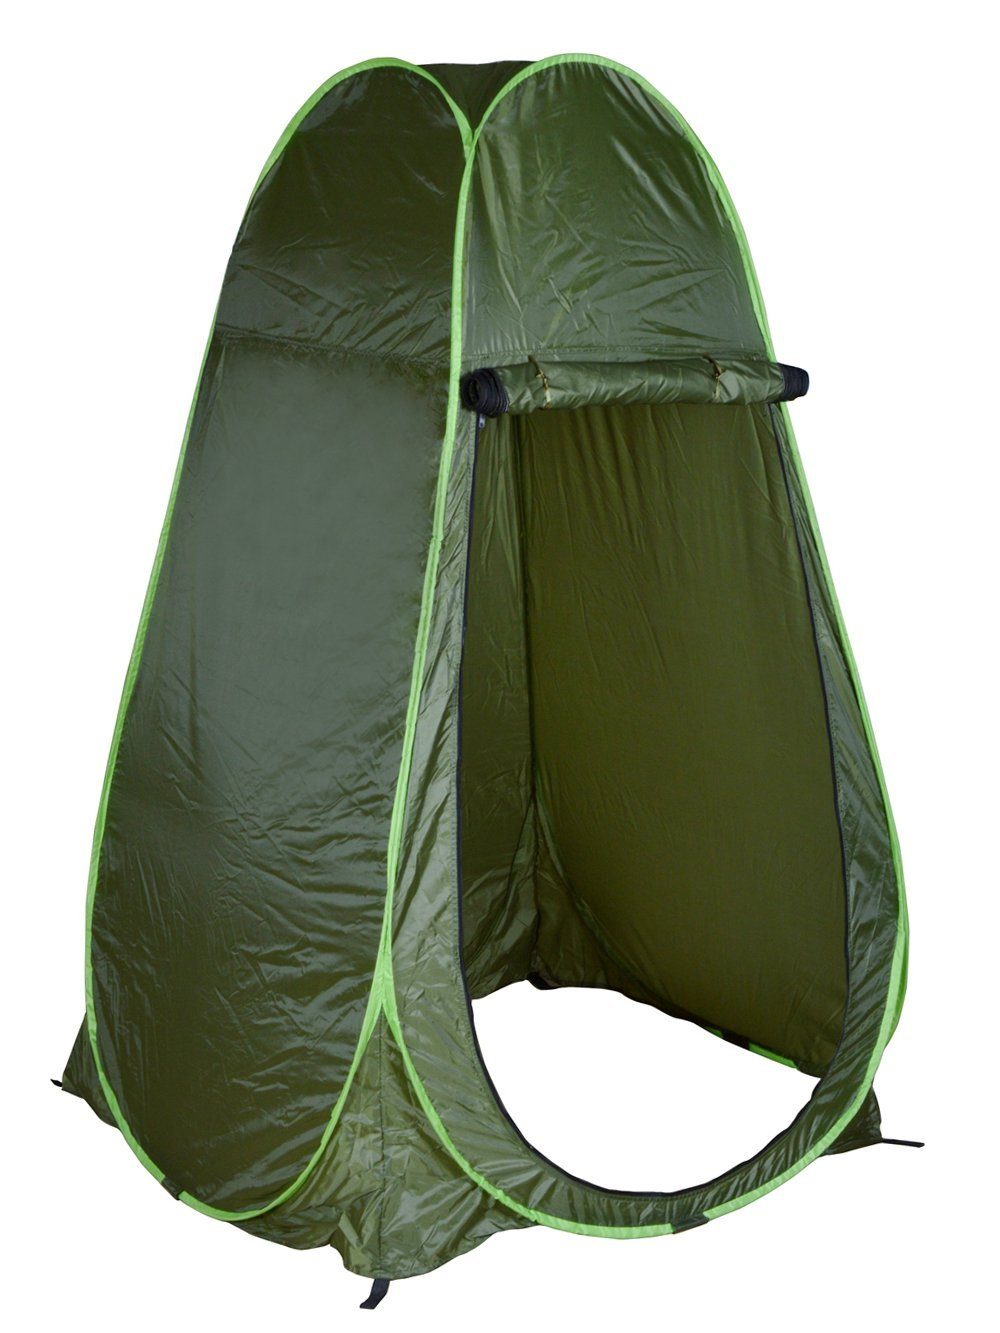 CALHOME Portable Green Outdoor Pop Up Tent C&ing Shower Privacy Toilet Changing Room  sc 1 st  Walmart : portable toilet tents - memphite.com